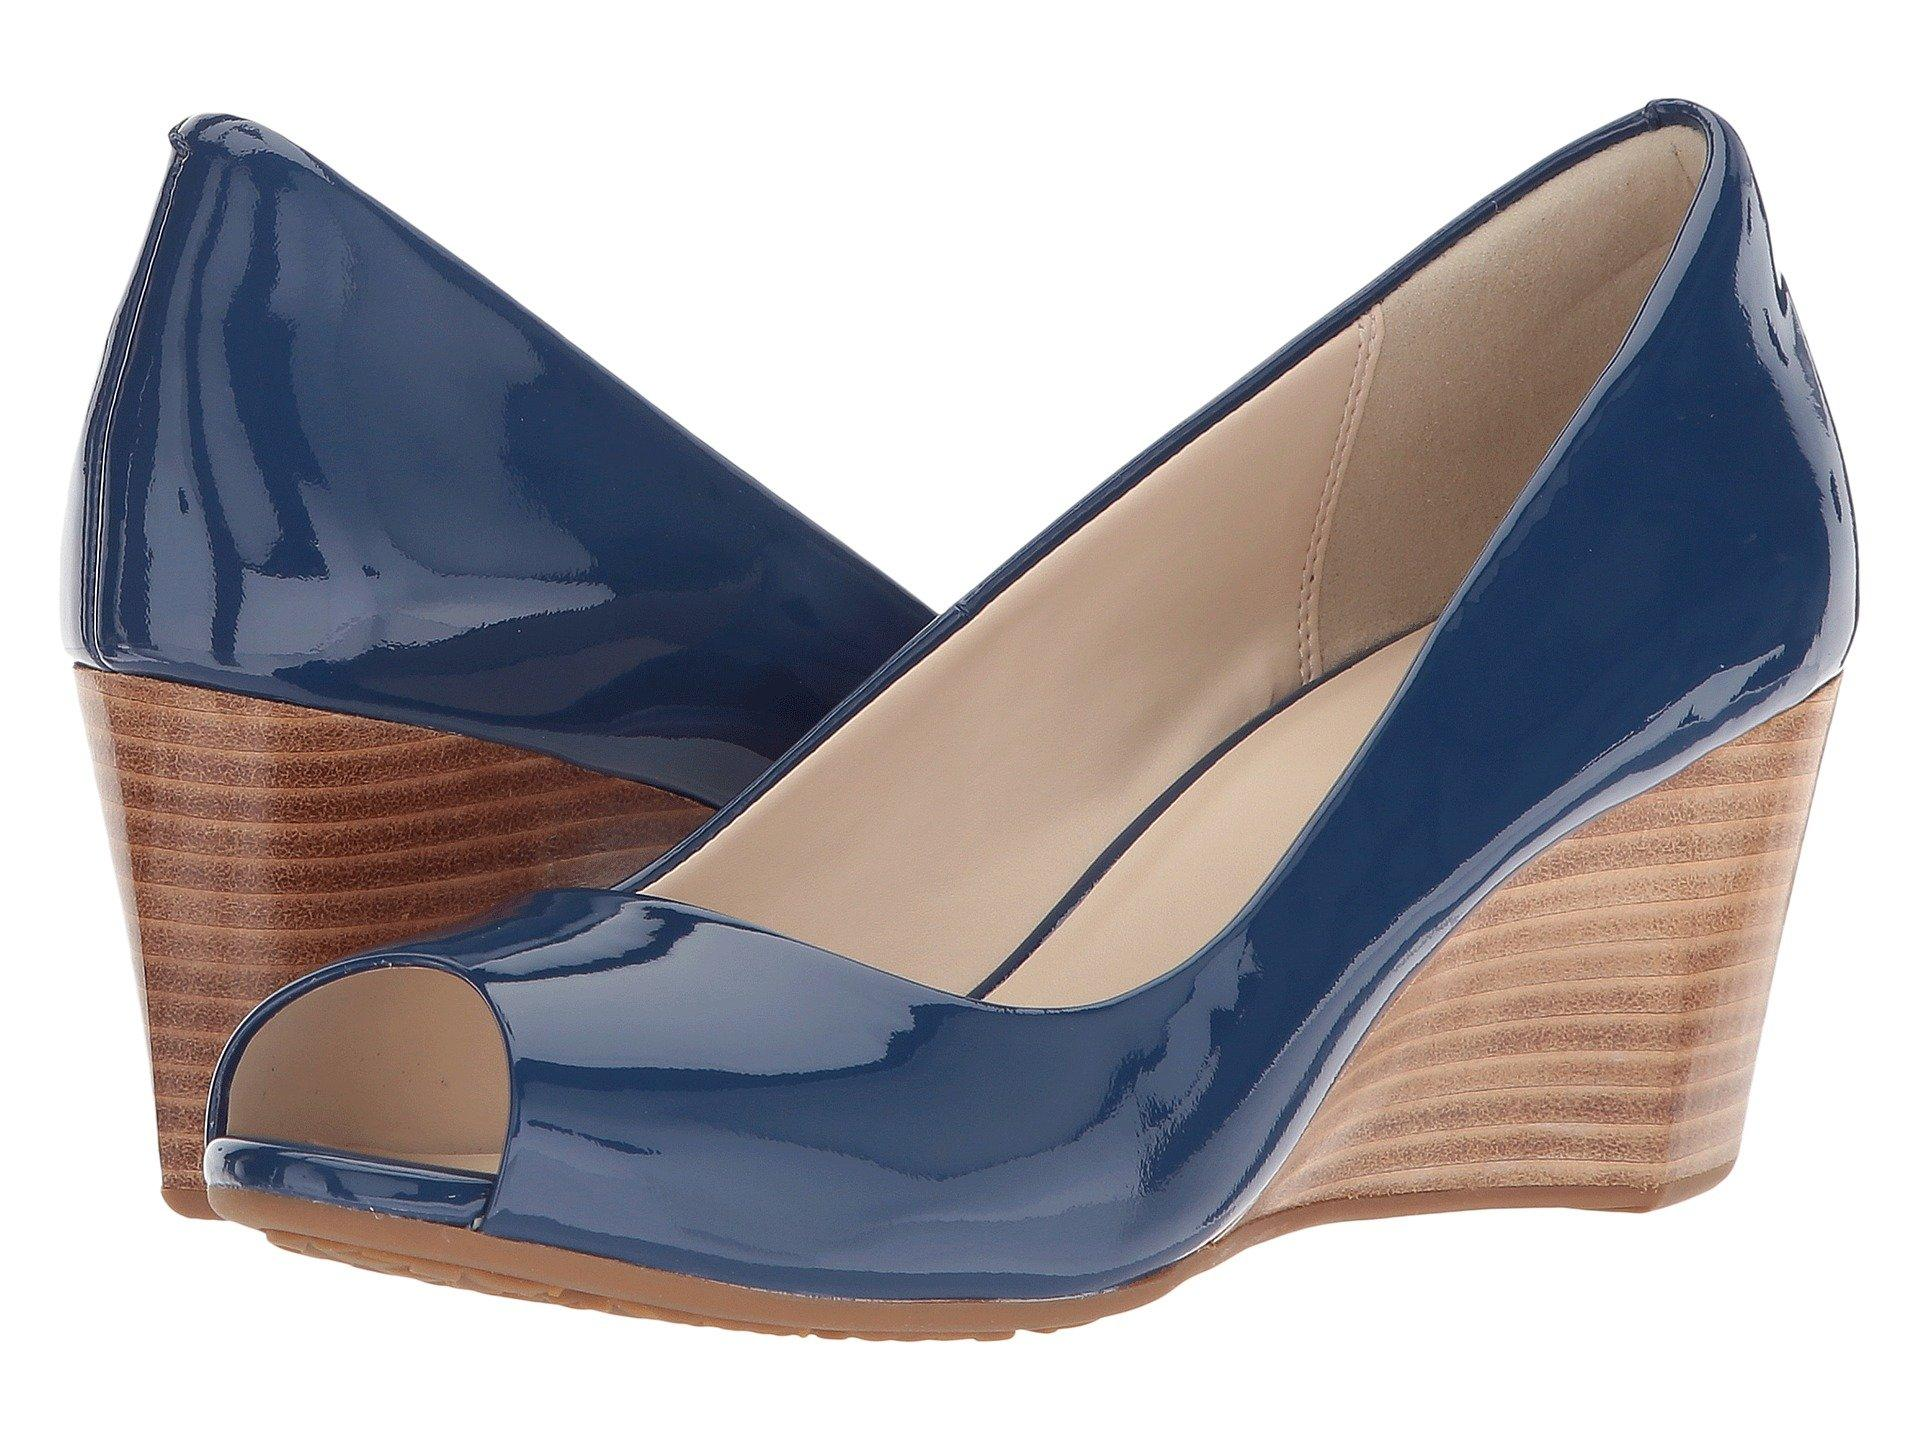 0a3b1f17d70 Lyst - Cole Haan Sadie Open Toe Wedge 65mm in Blue - Save 55%